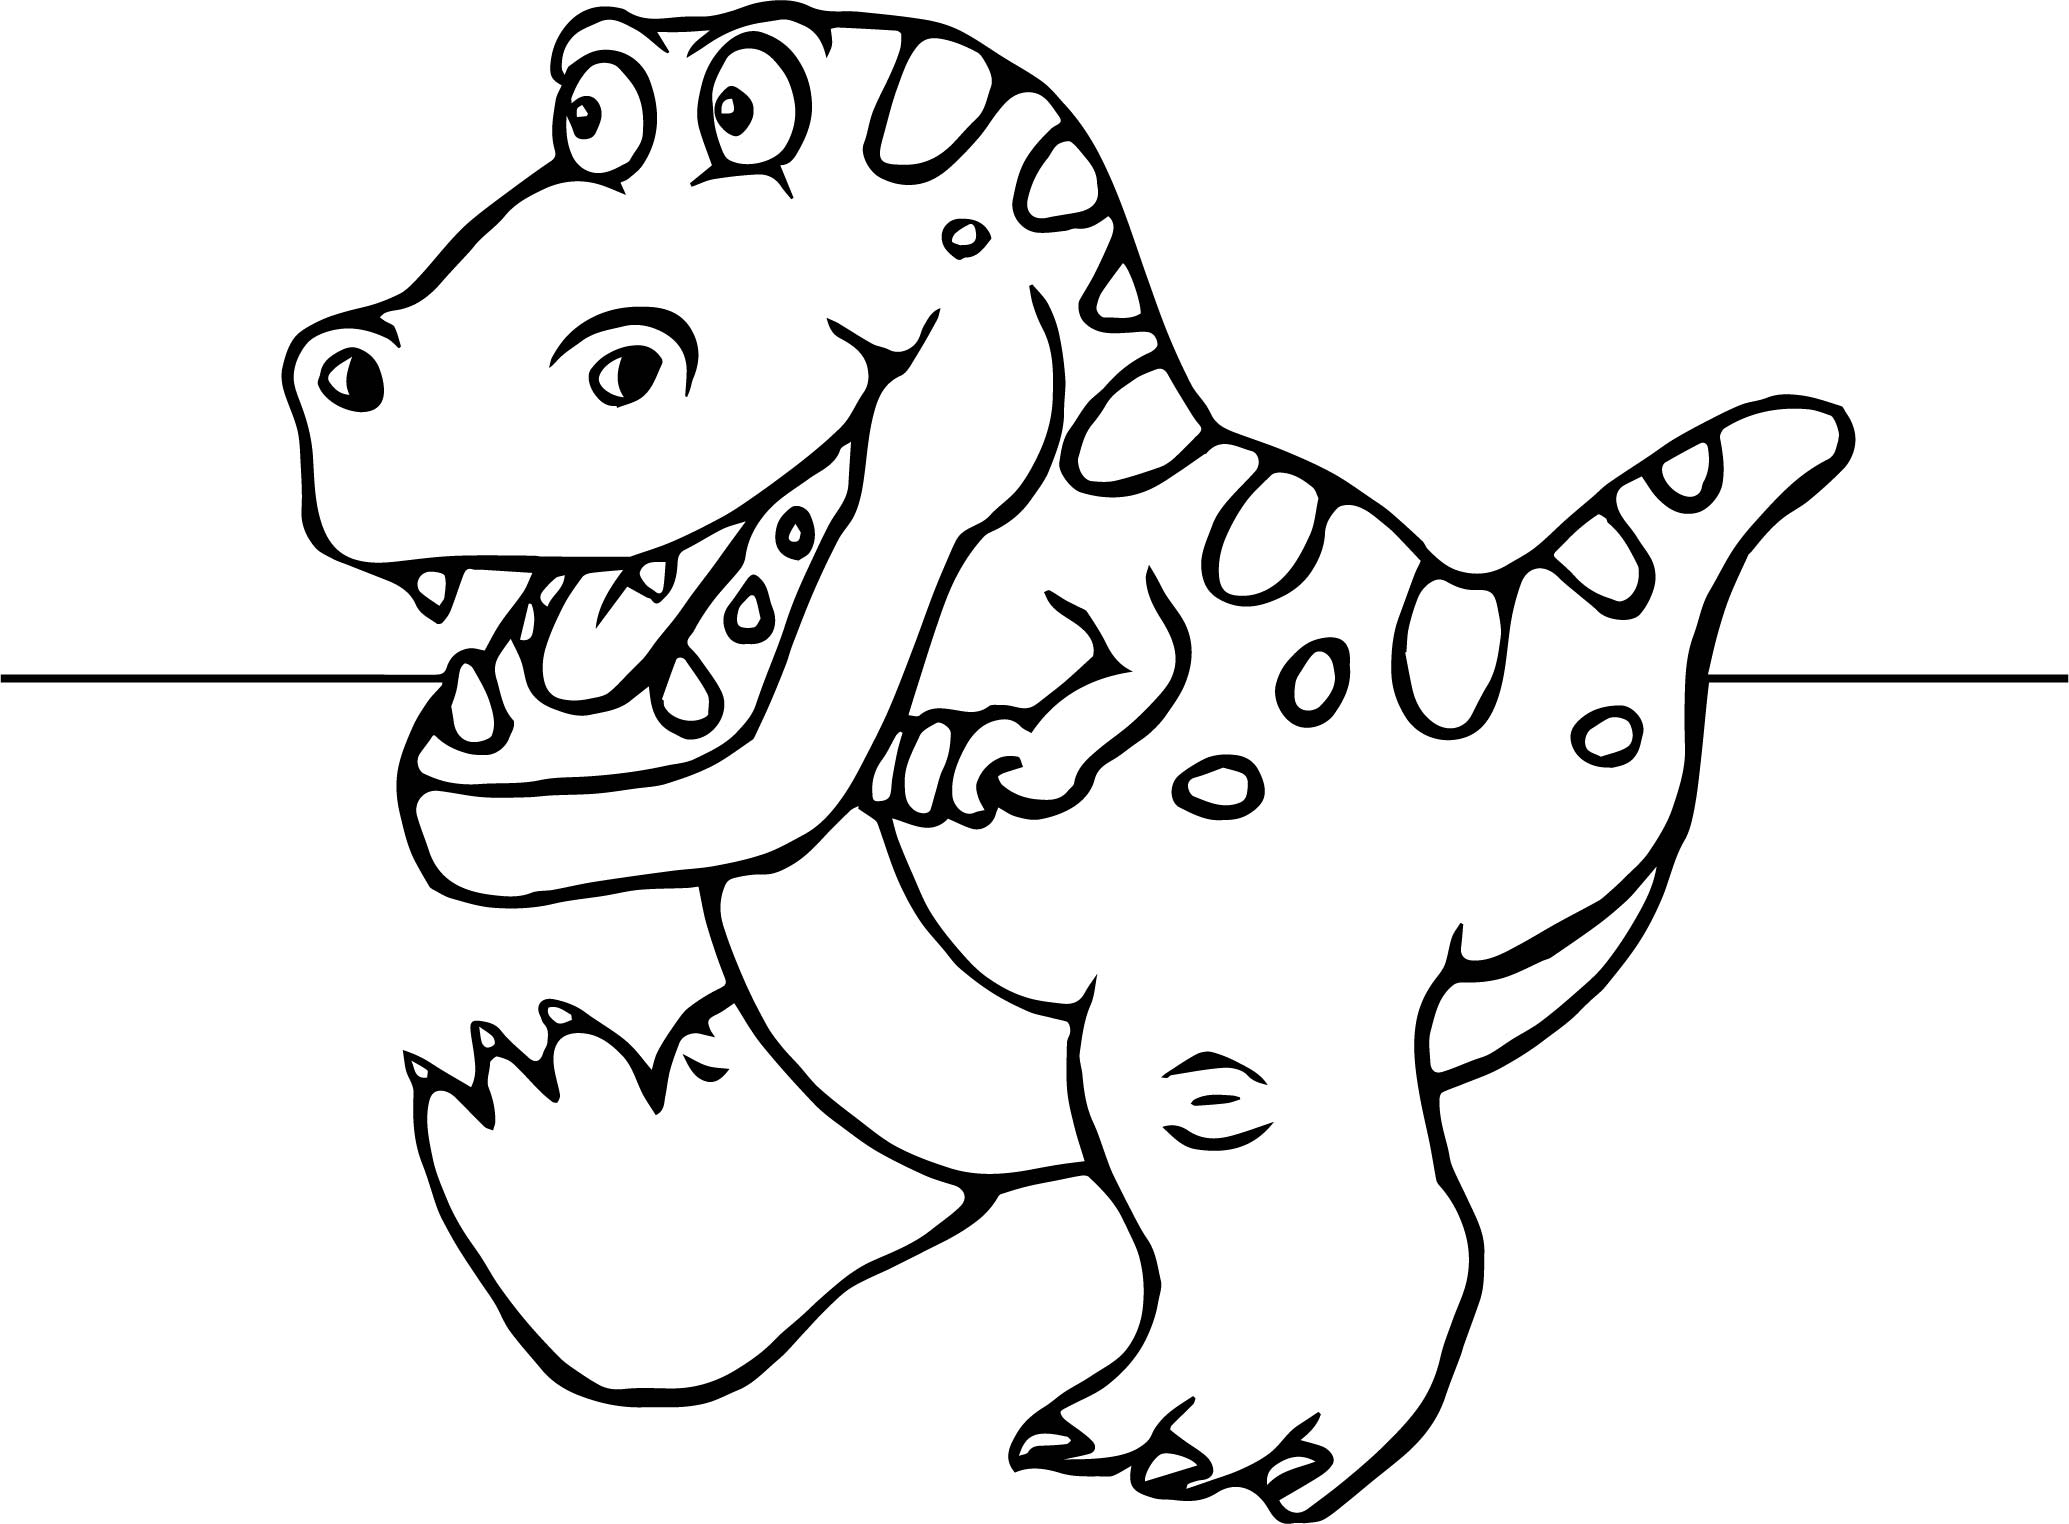 cartoon dinosaur coloring pictures funny dinosaur triceratops cartoon coloring pages for kids dinosaur cartoon pictures coloring